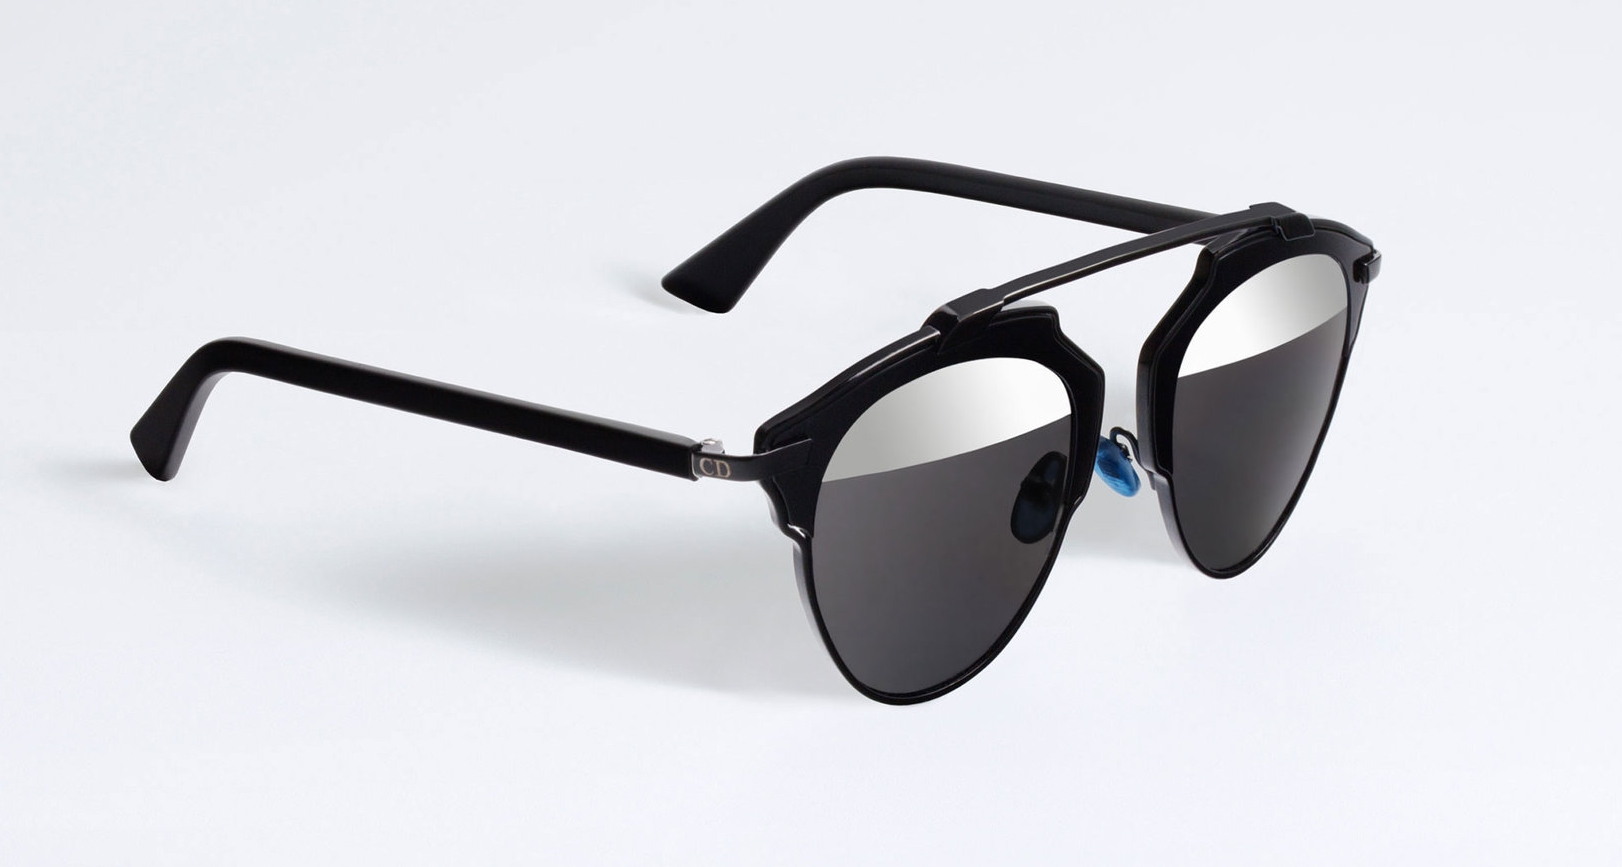 Sleek black sunnies are low-key but polished - Dior